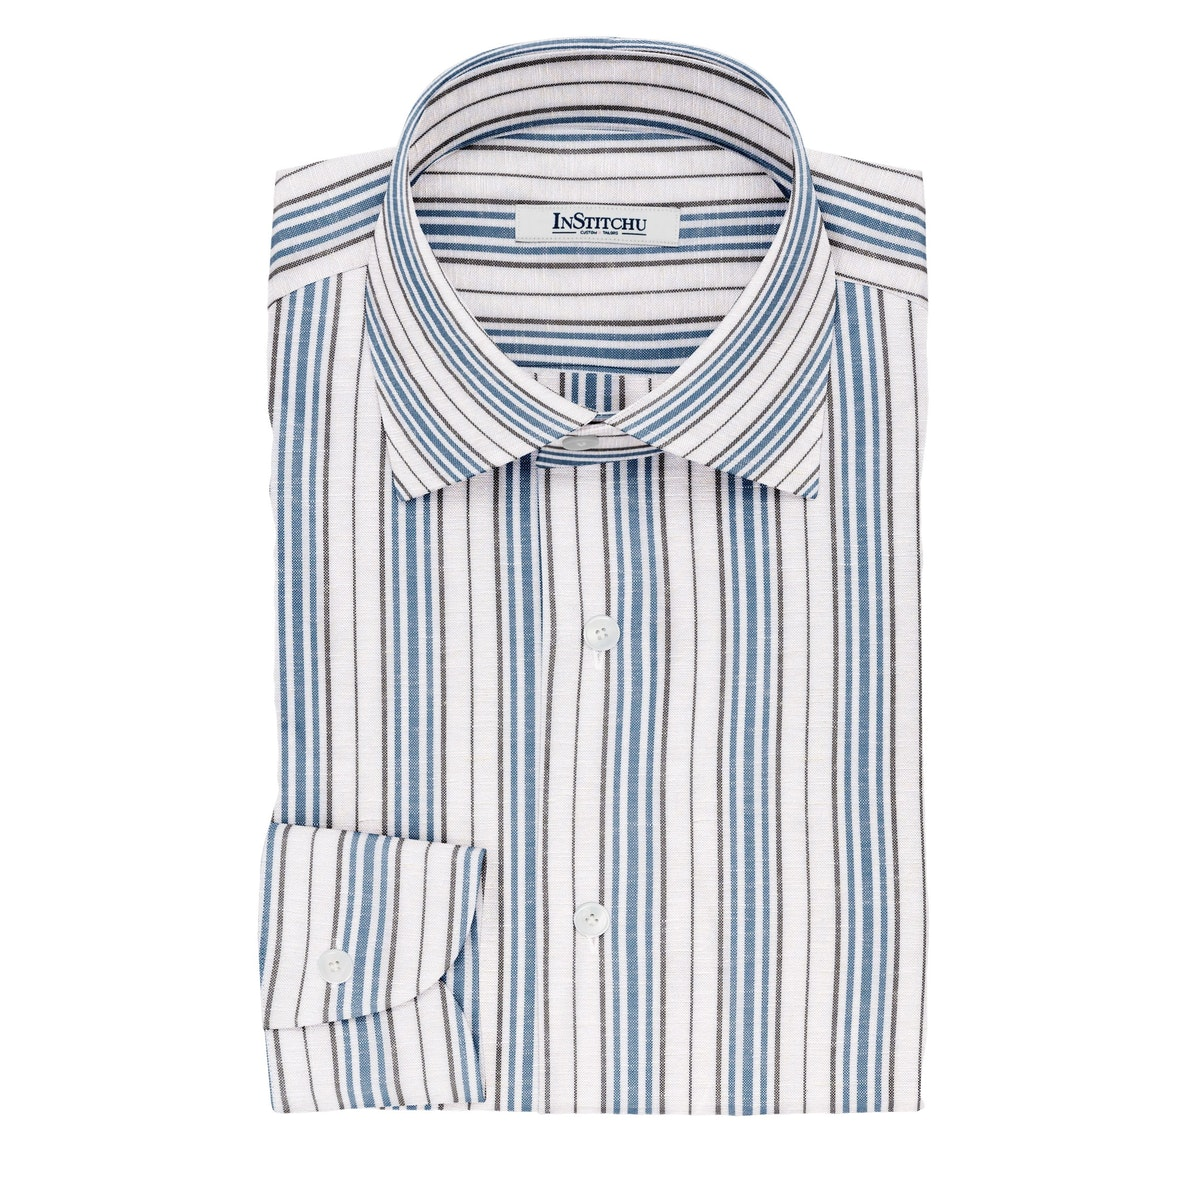 InStitchu Collection The Grisham White, Blue and Black Striped Linen Blend Shirt